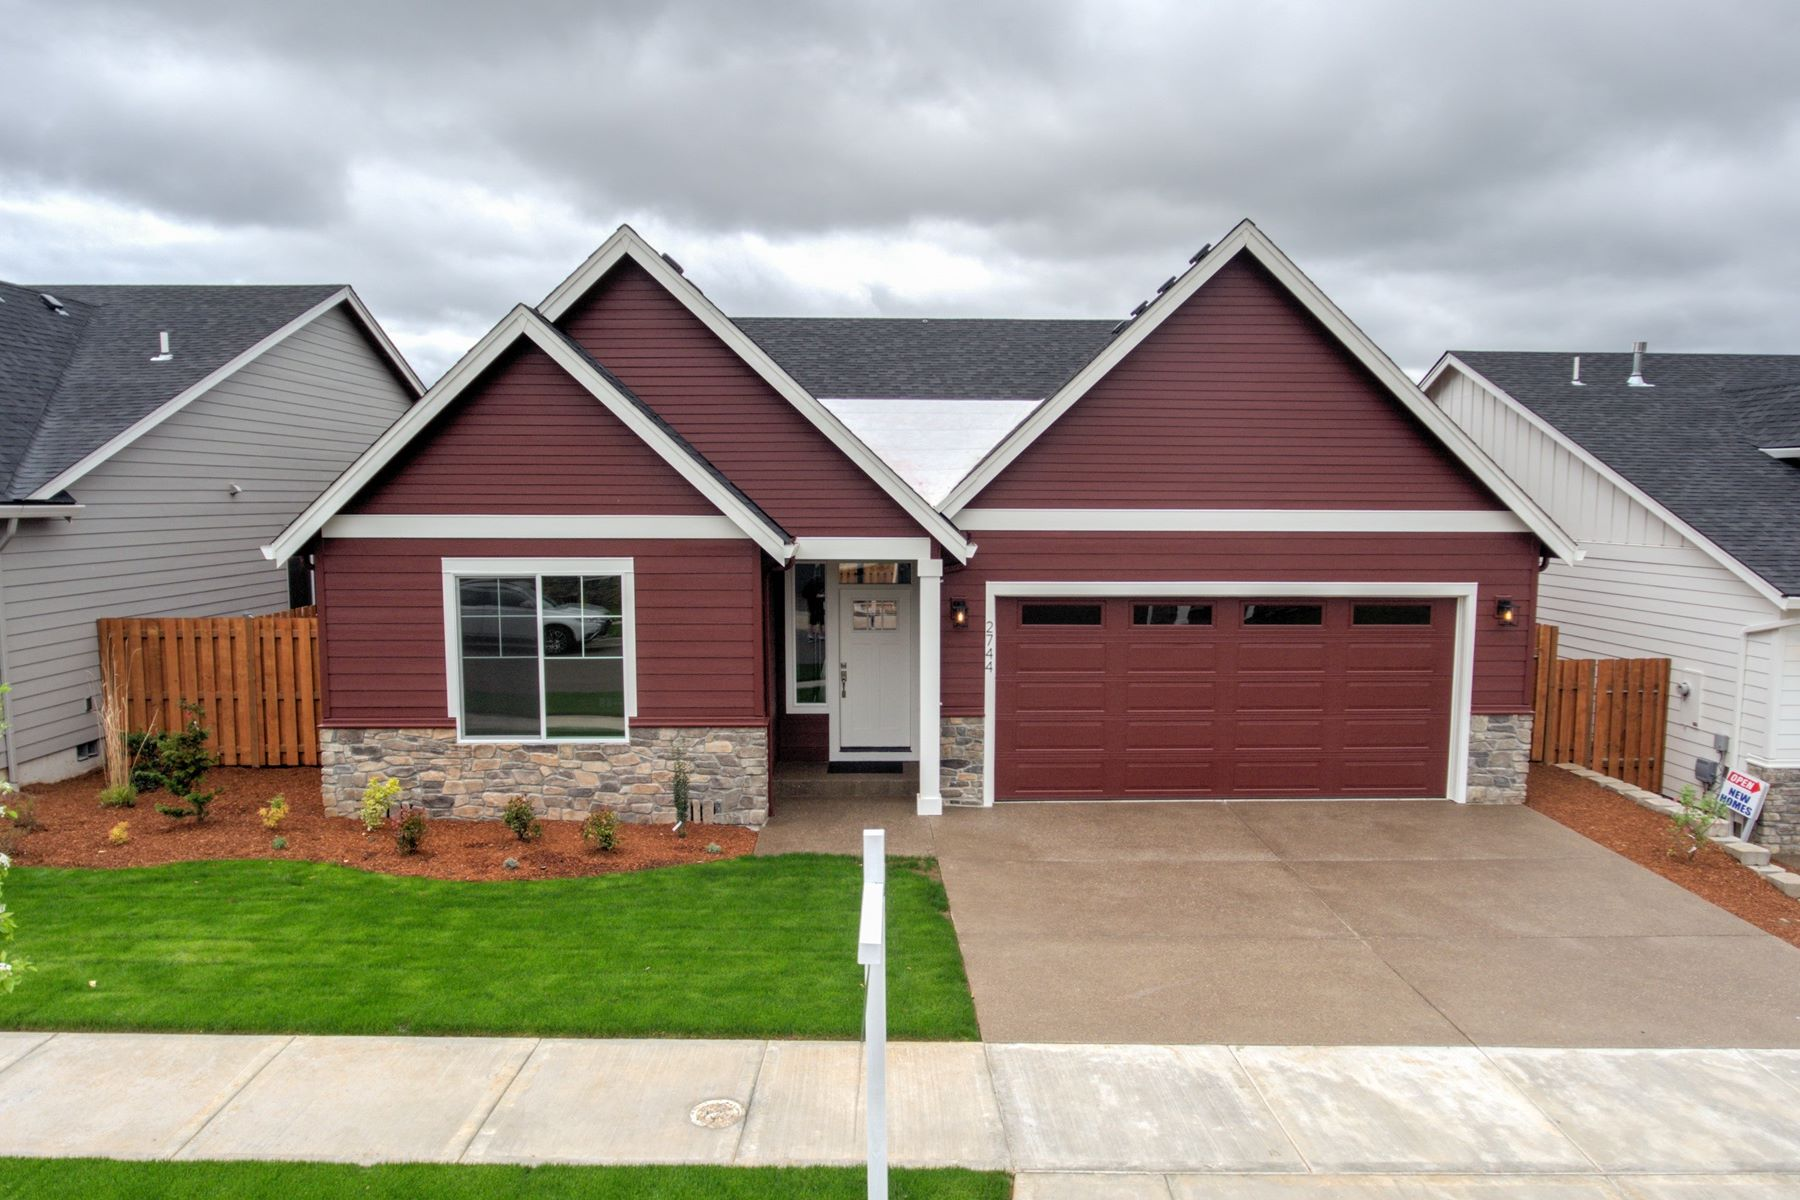 Single Family Homes for Active at 2744 NW Cherry Blossom Drive Salem, Oregon 97304 United States